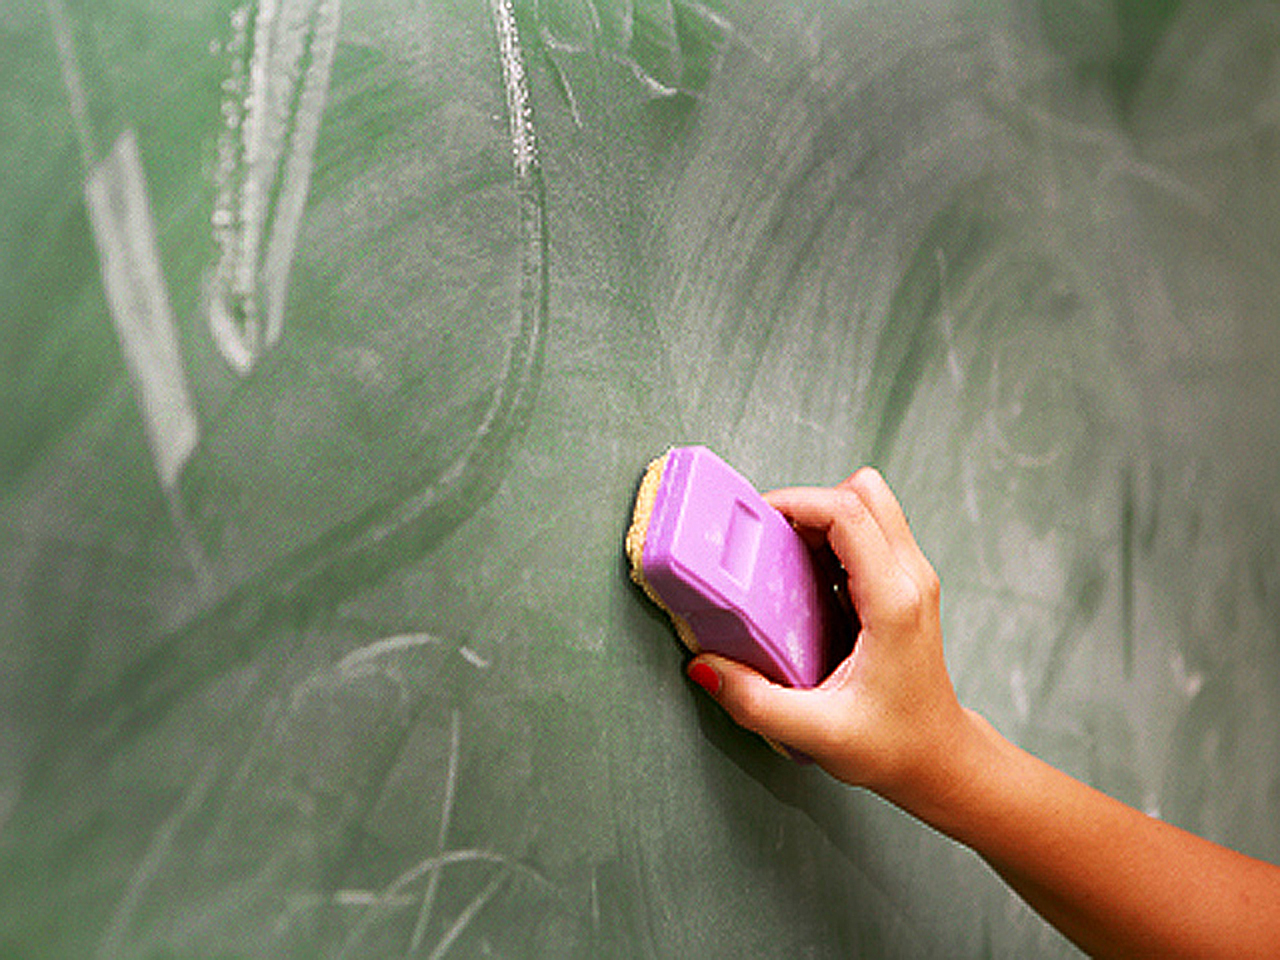 Dustless chalk may cause health woes in milk-allergic kids